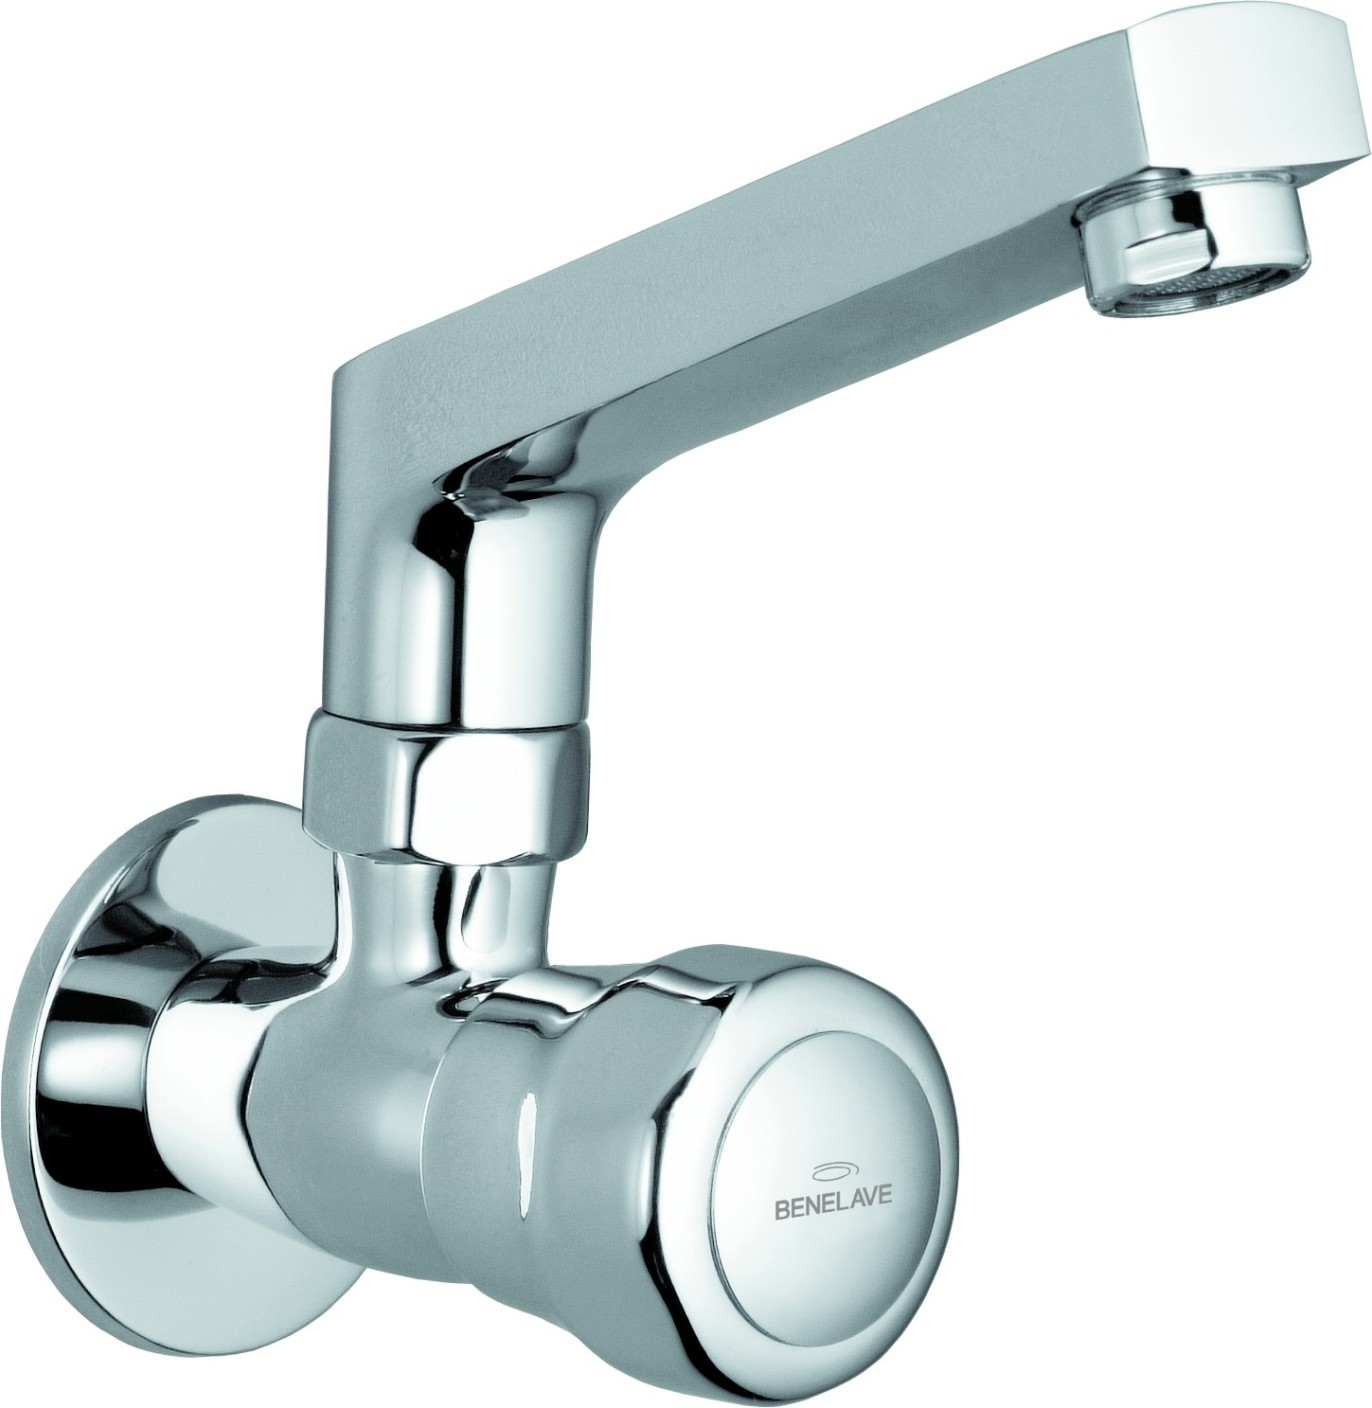 style faucets classic sophisticated meet ish hansa projects cliff us hansacliff for frankfurt in at the faucet elegant meets home